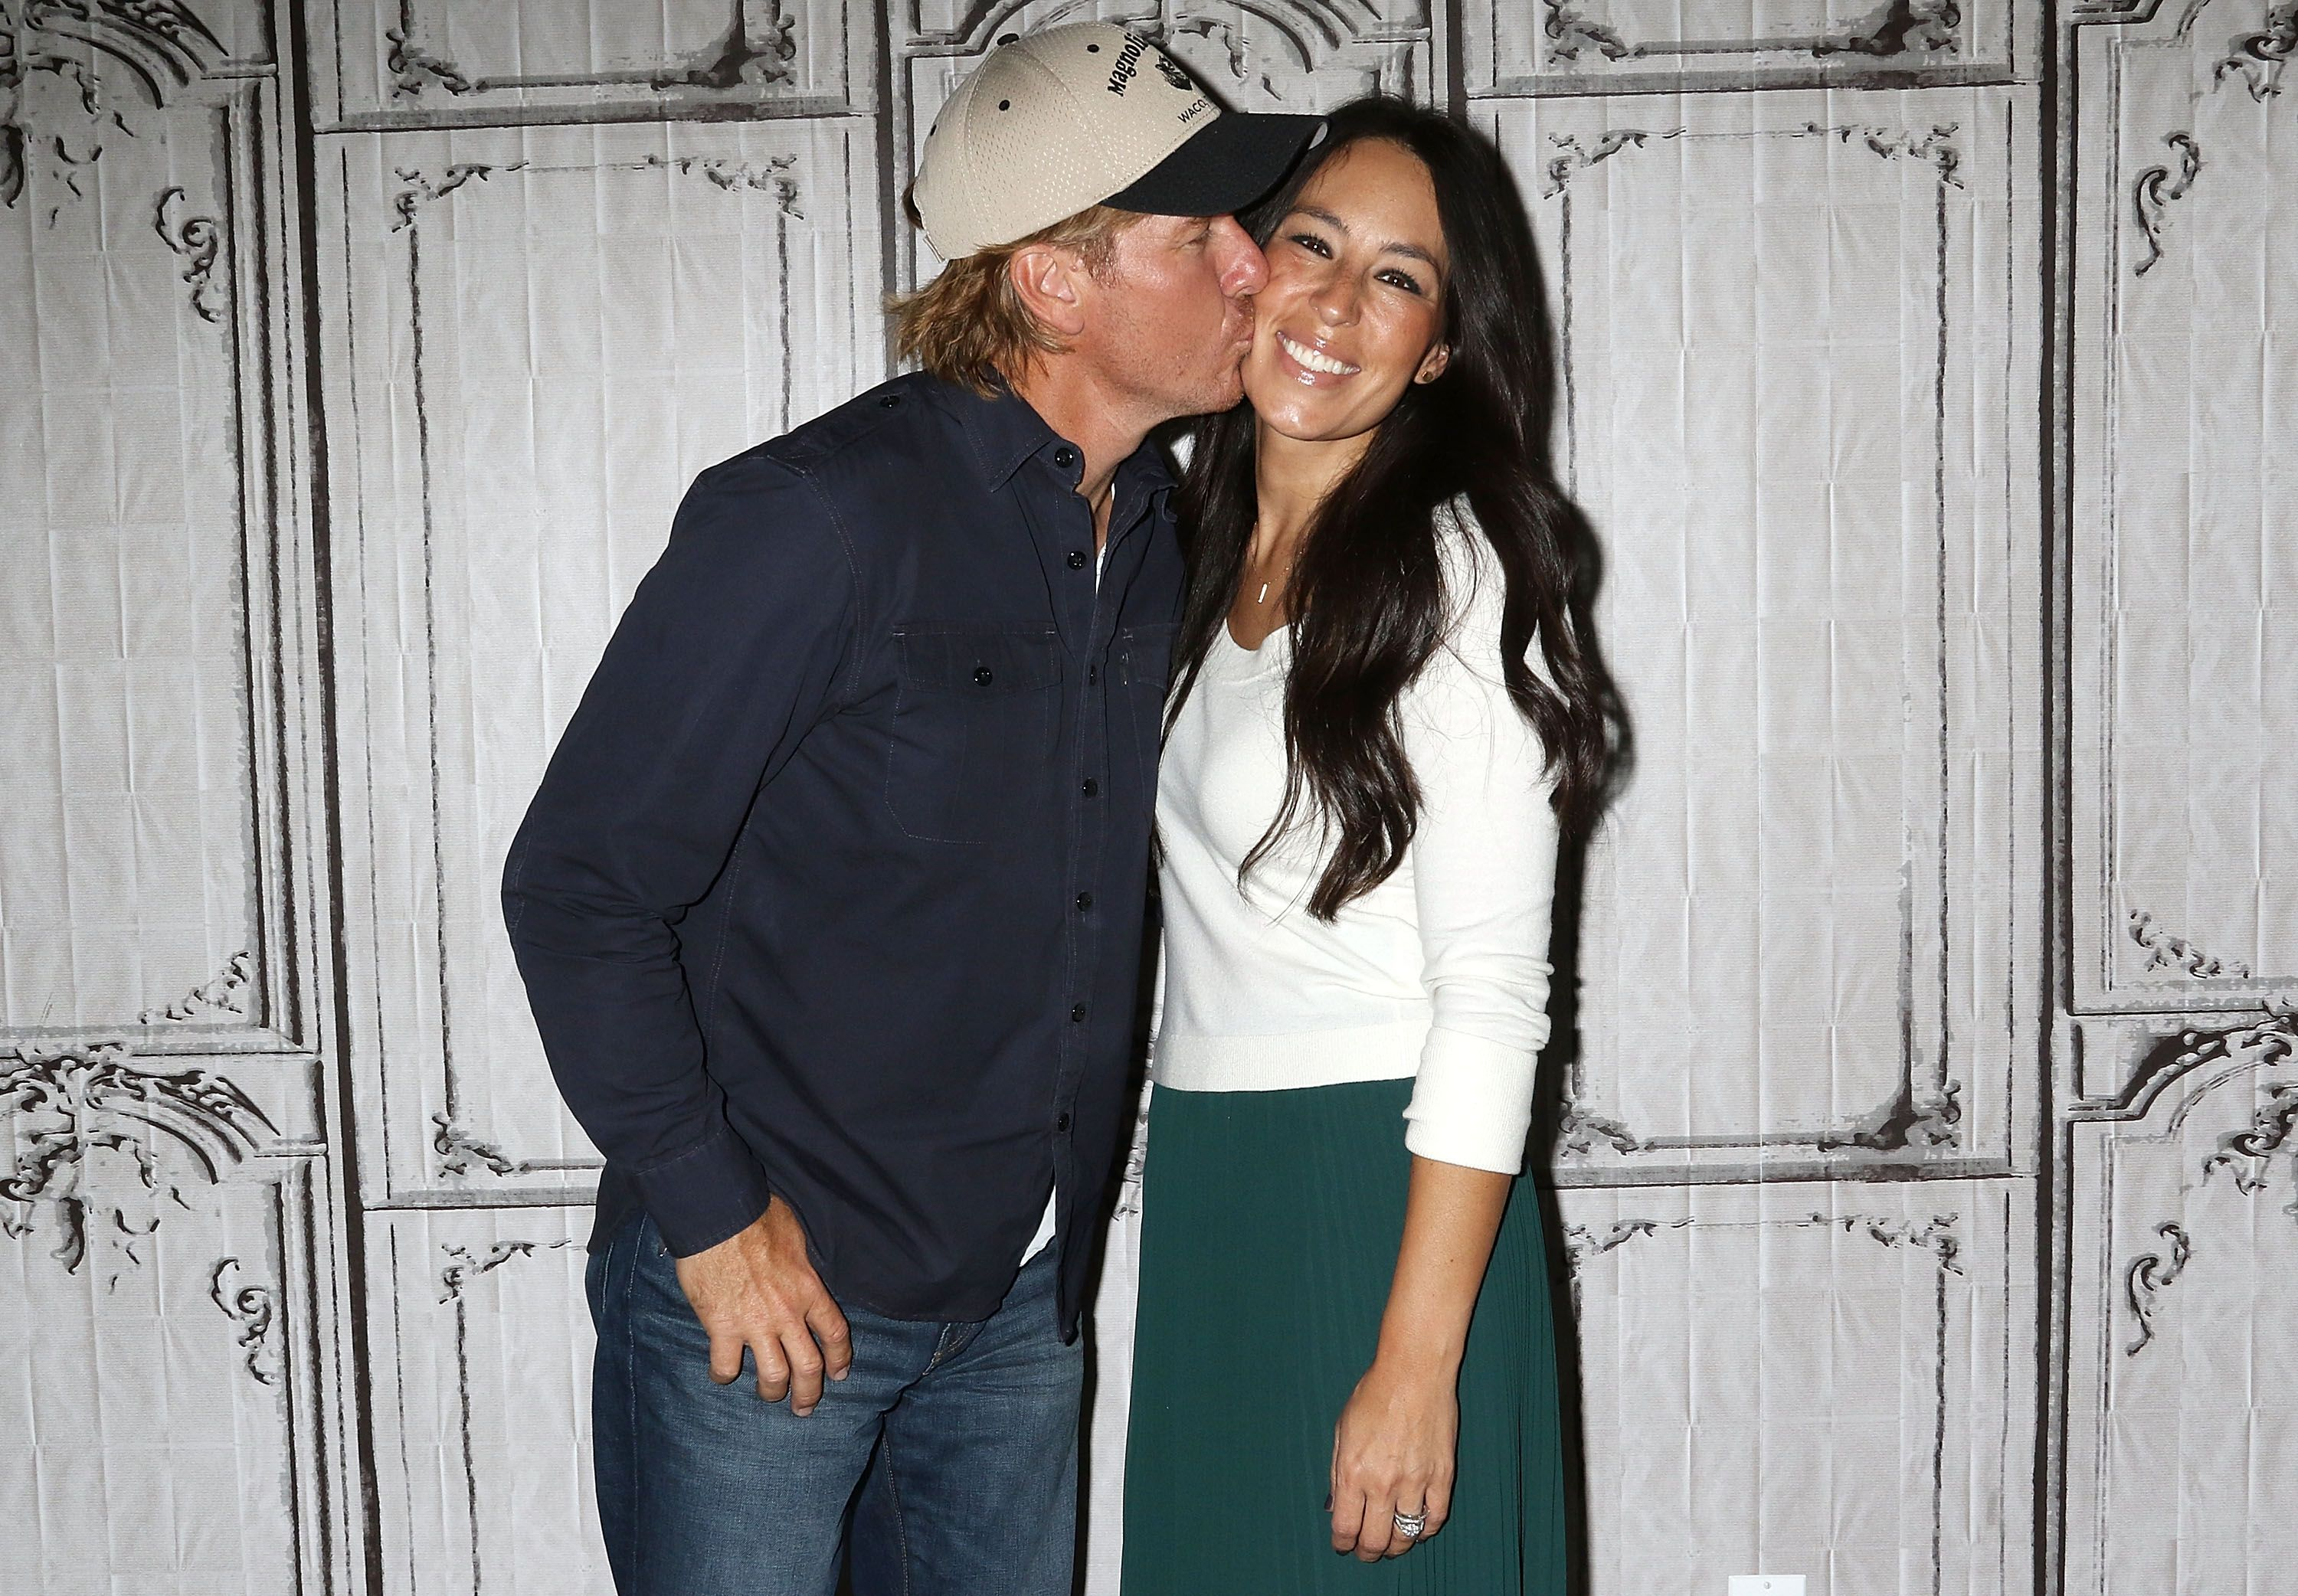 Before Meeting Joanna, Chip Gaines Says He Was Hell-Bent on Making Another Woman His Wife Before Meeting Joanna, Chip Gaines Says He Was Hell-Bent on Making Another Woman His Wife new pictures